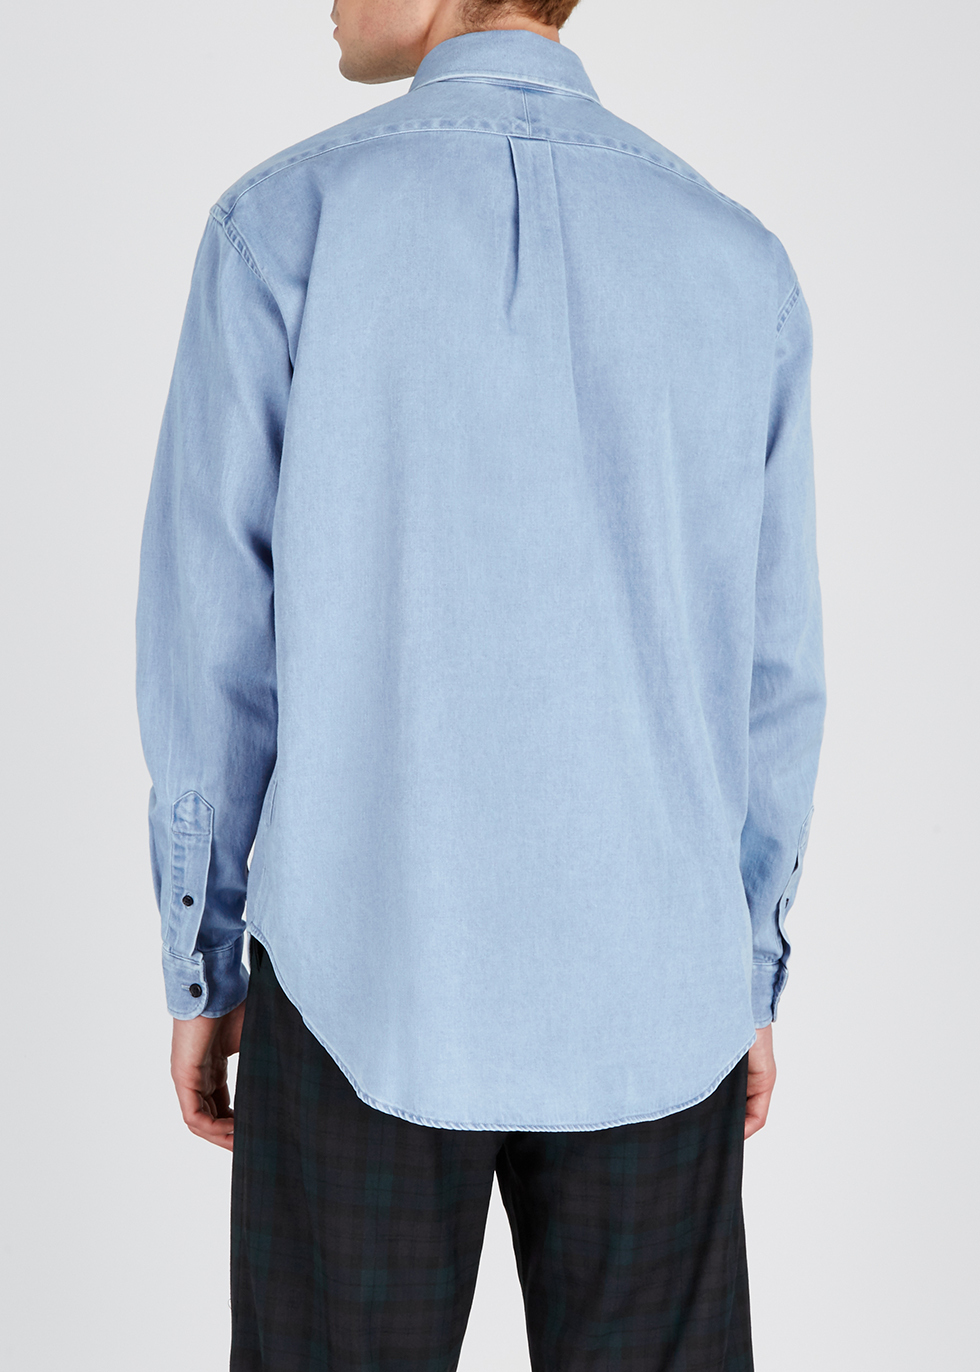 Light blue denim shirt - Acne Studios